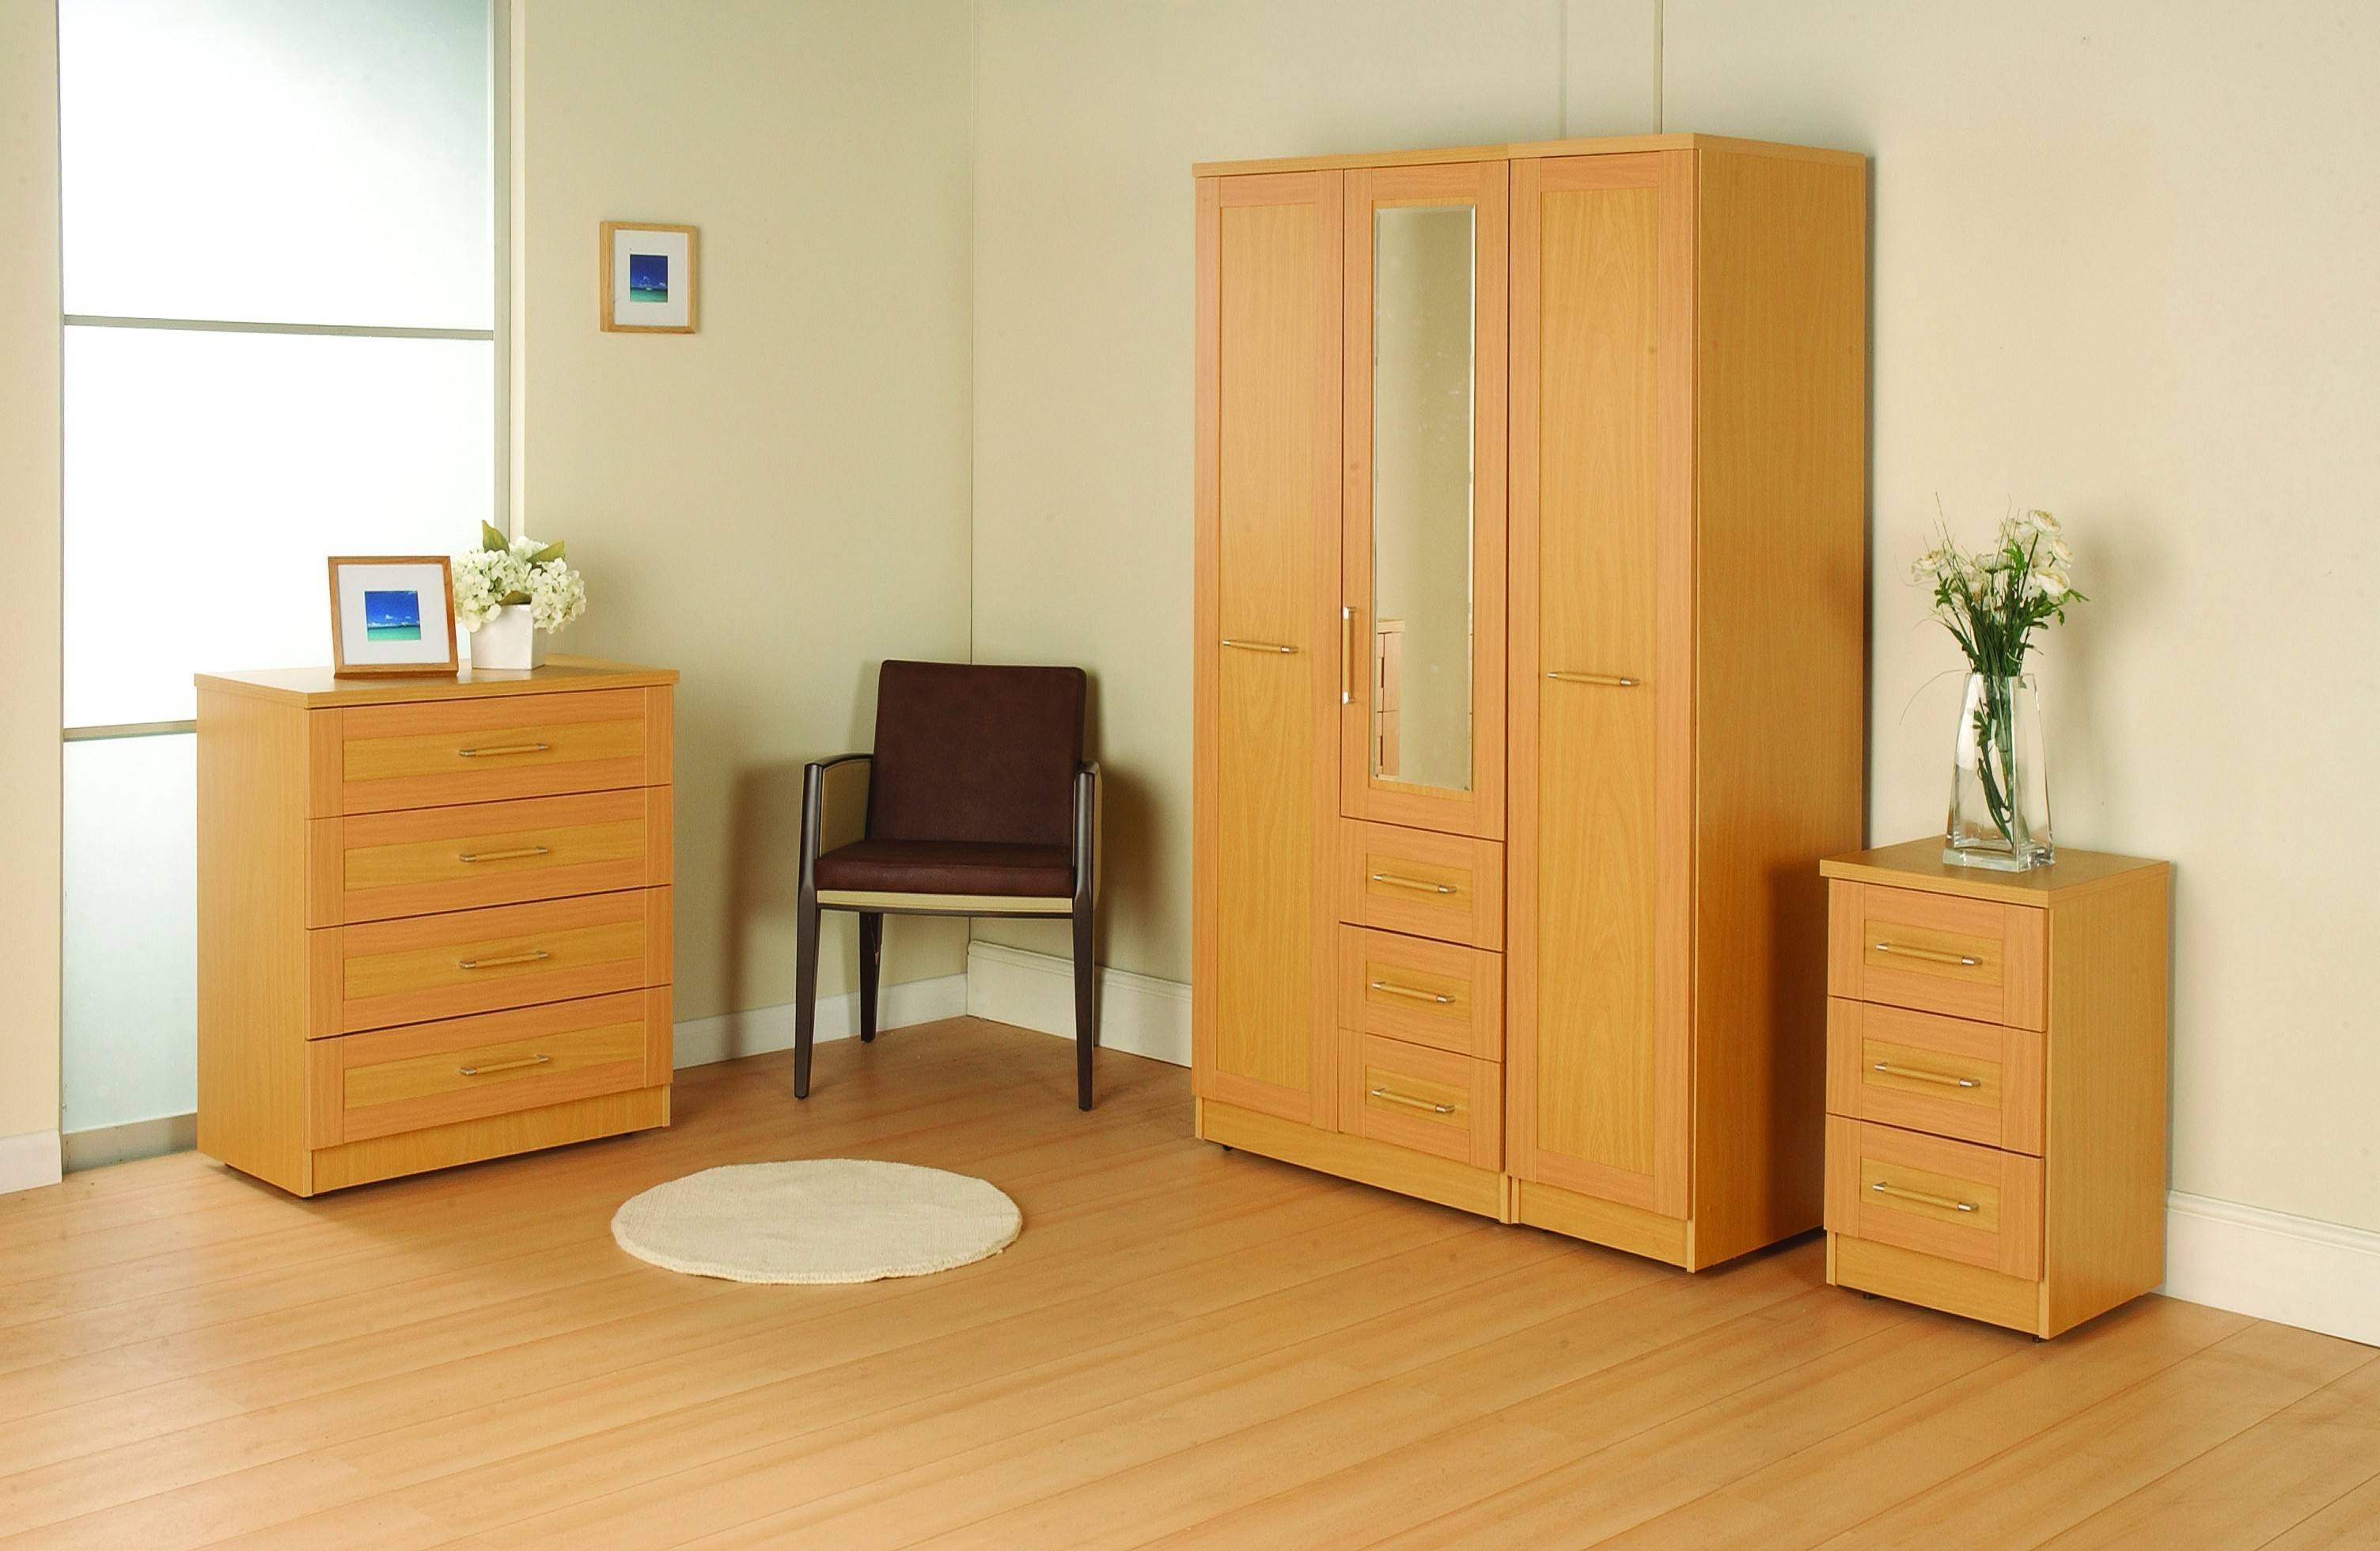 Adams Furniture Store - Bedroom with Wardrobes Chest of Drawers Combination (Image 3 of 15)